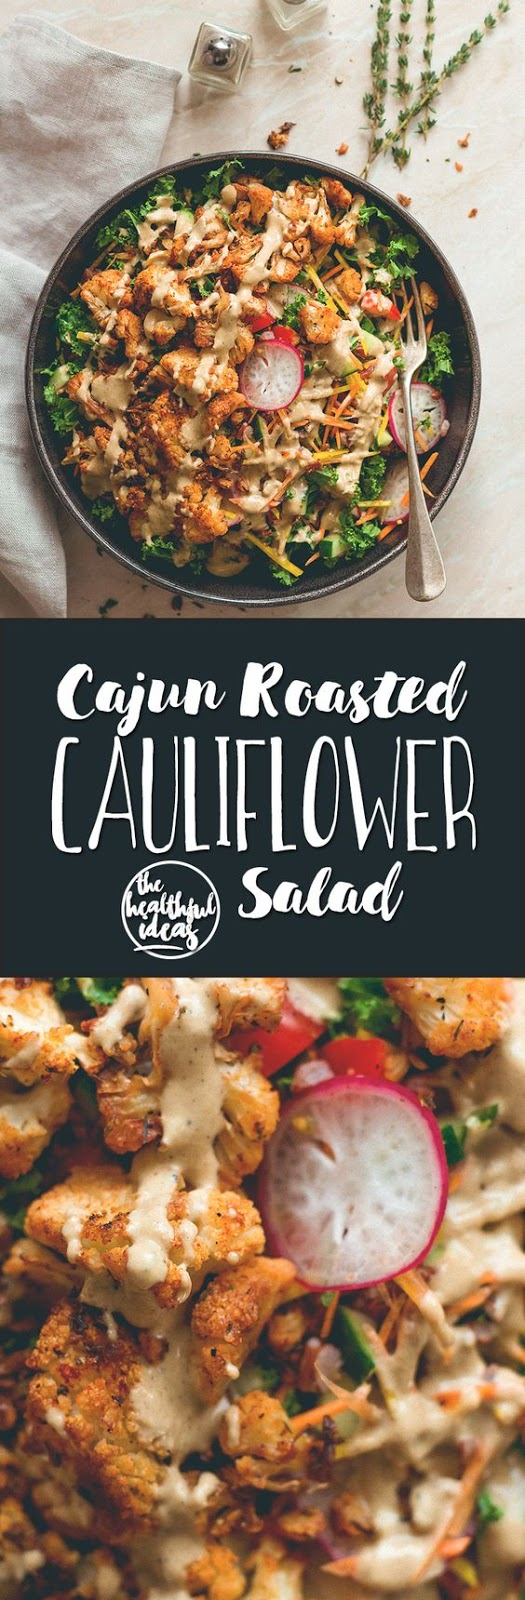 Cajun Roasted Cauliflower Salad - the most delicious, hearty, filling salad with amazing cajun spiced roasted cauliflower and creamy tahini dressing.